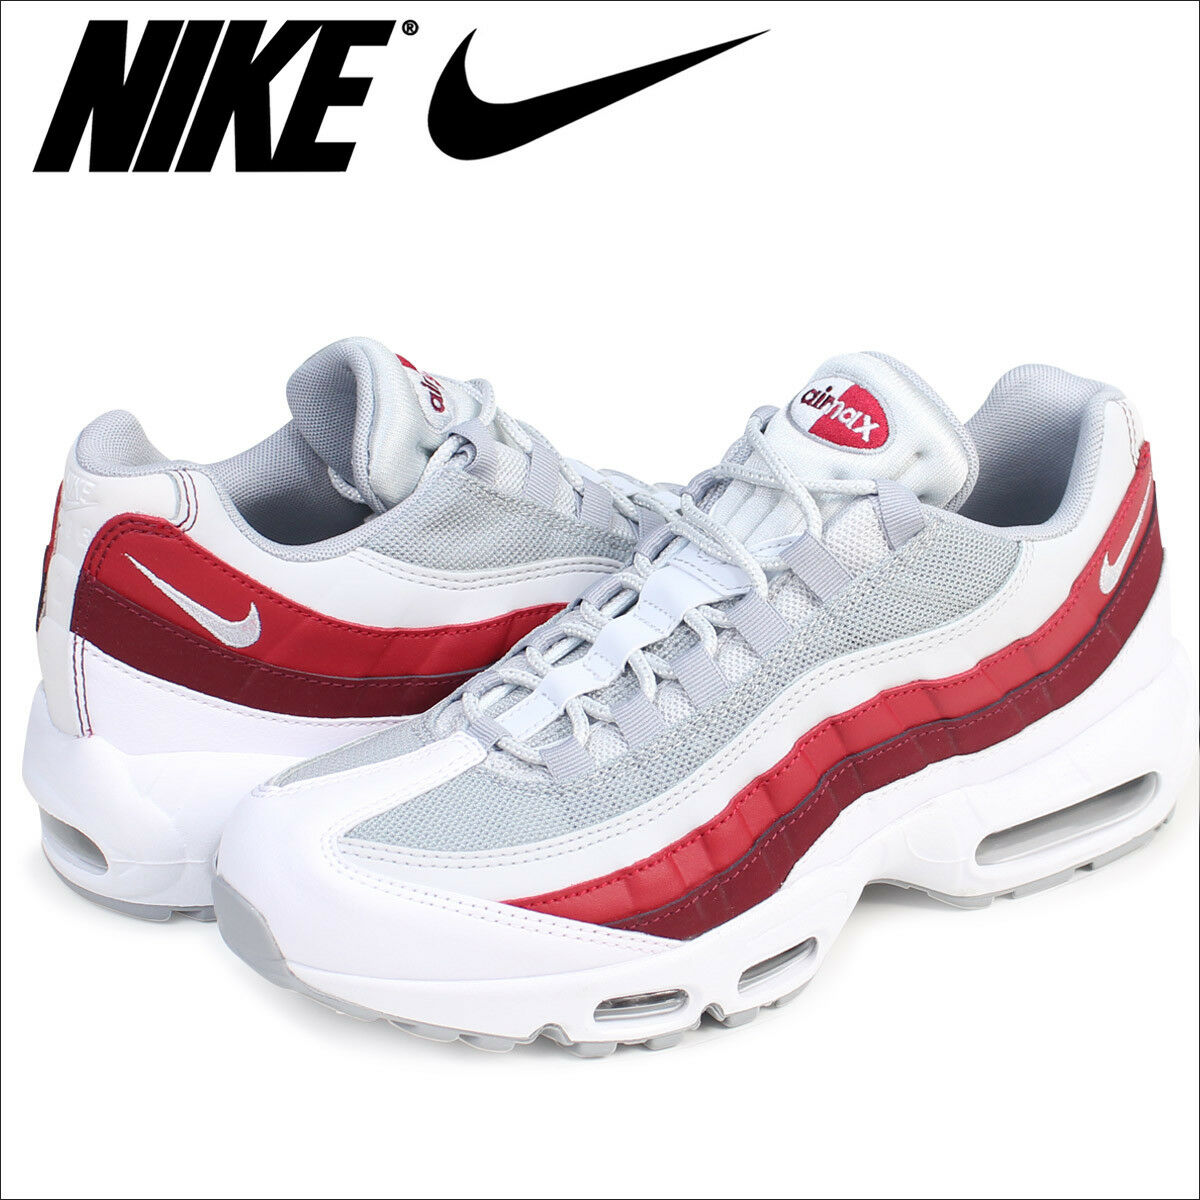 promo code 8cea5 7f5ef ... real nike max air max nike 95 essential 749766 103 white wolf grey red  japan uomo